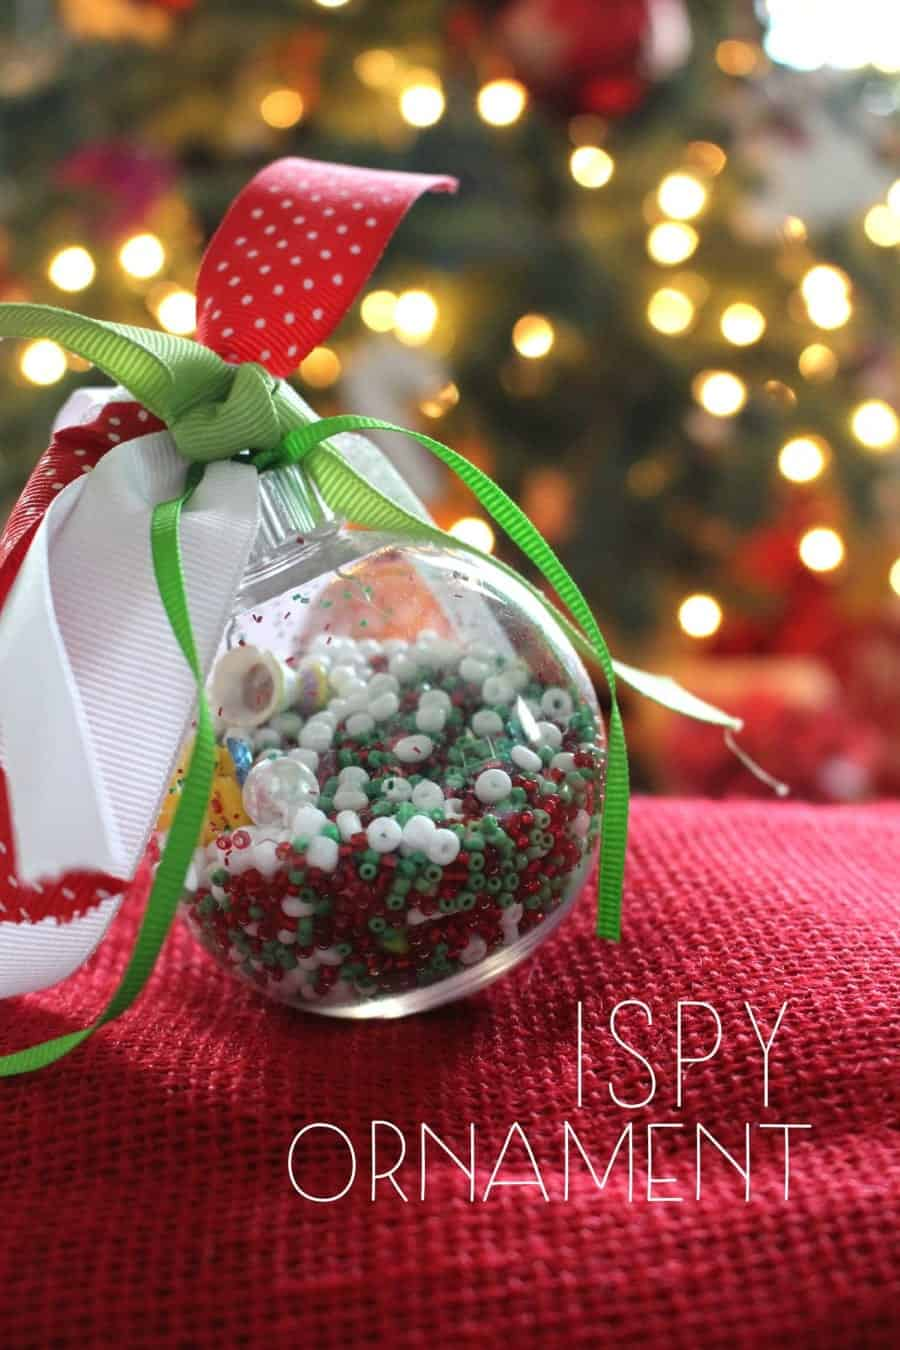 diy ispy ornament